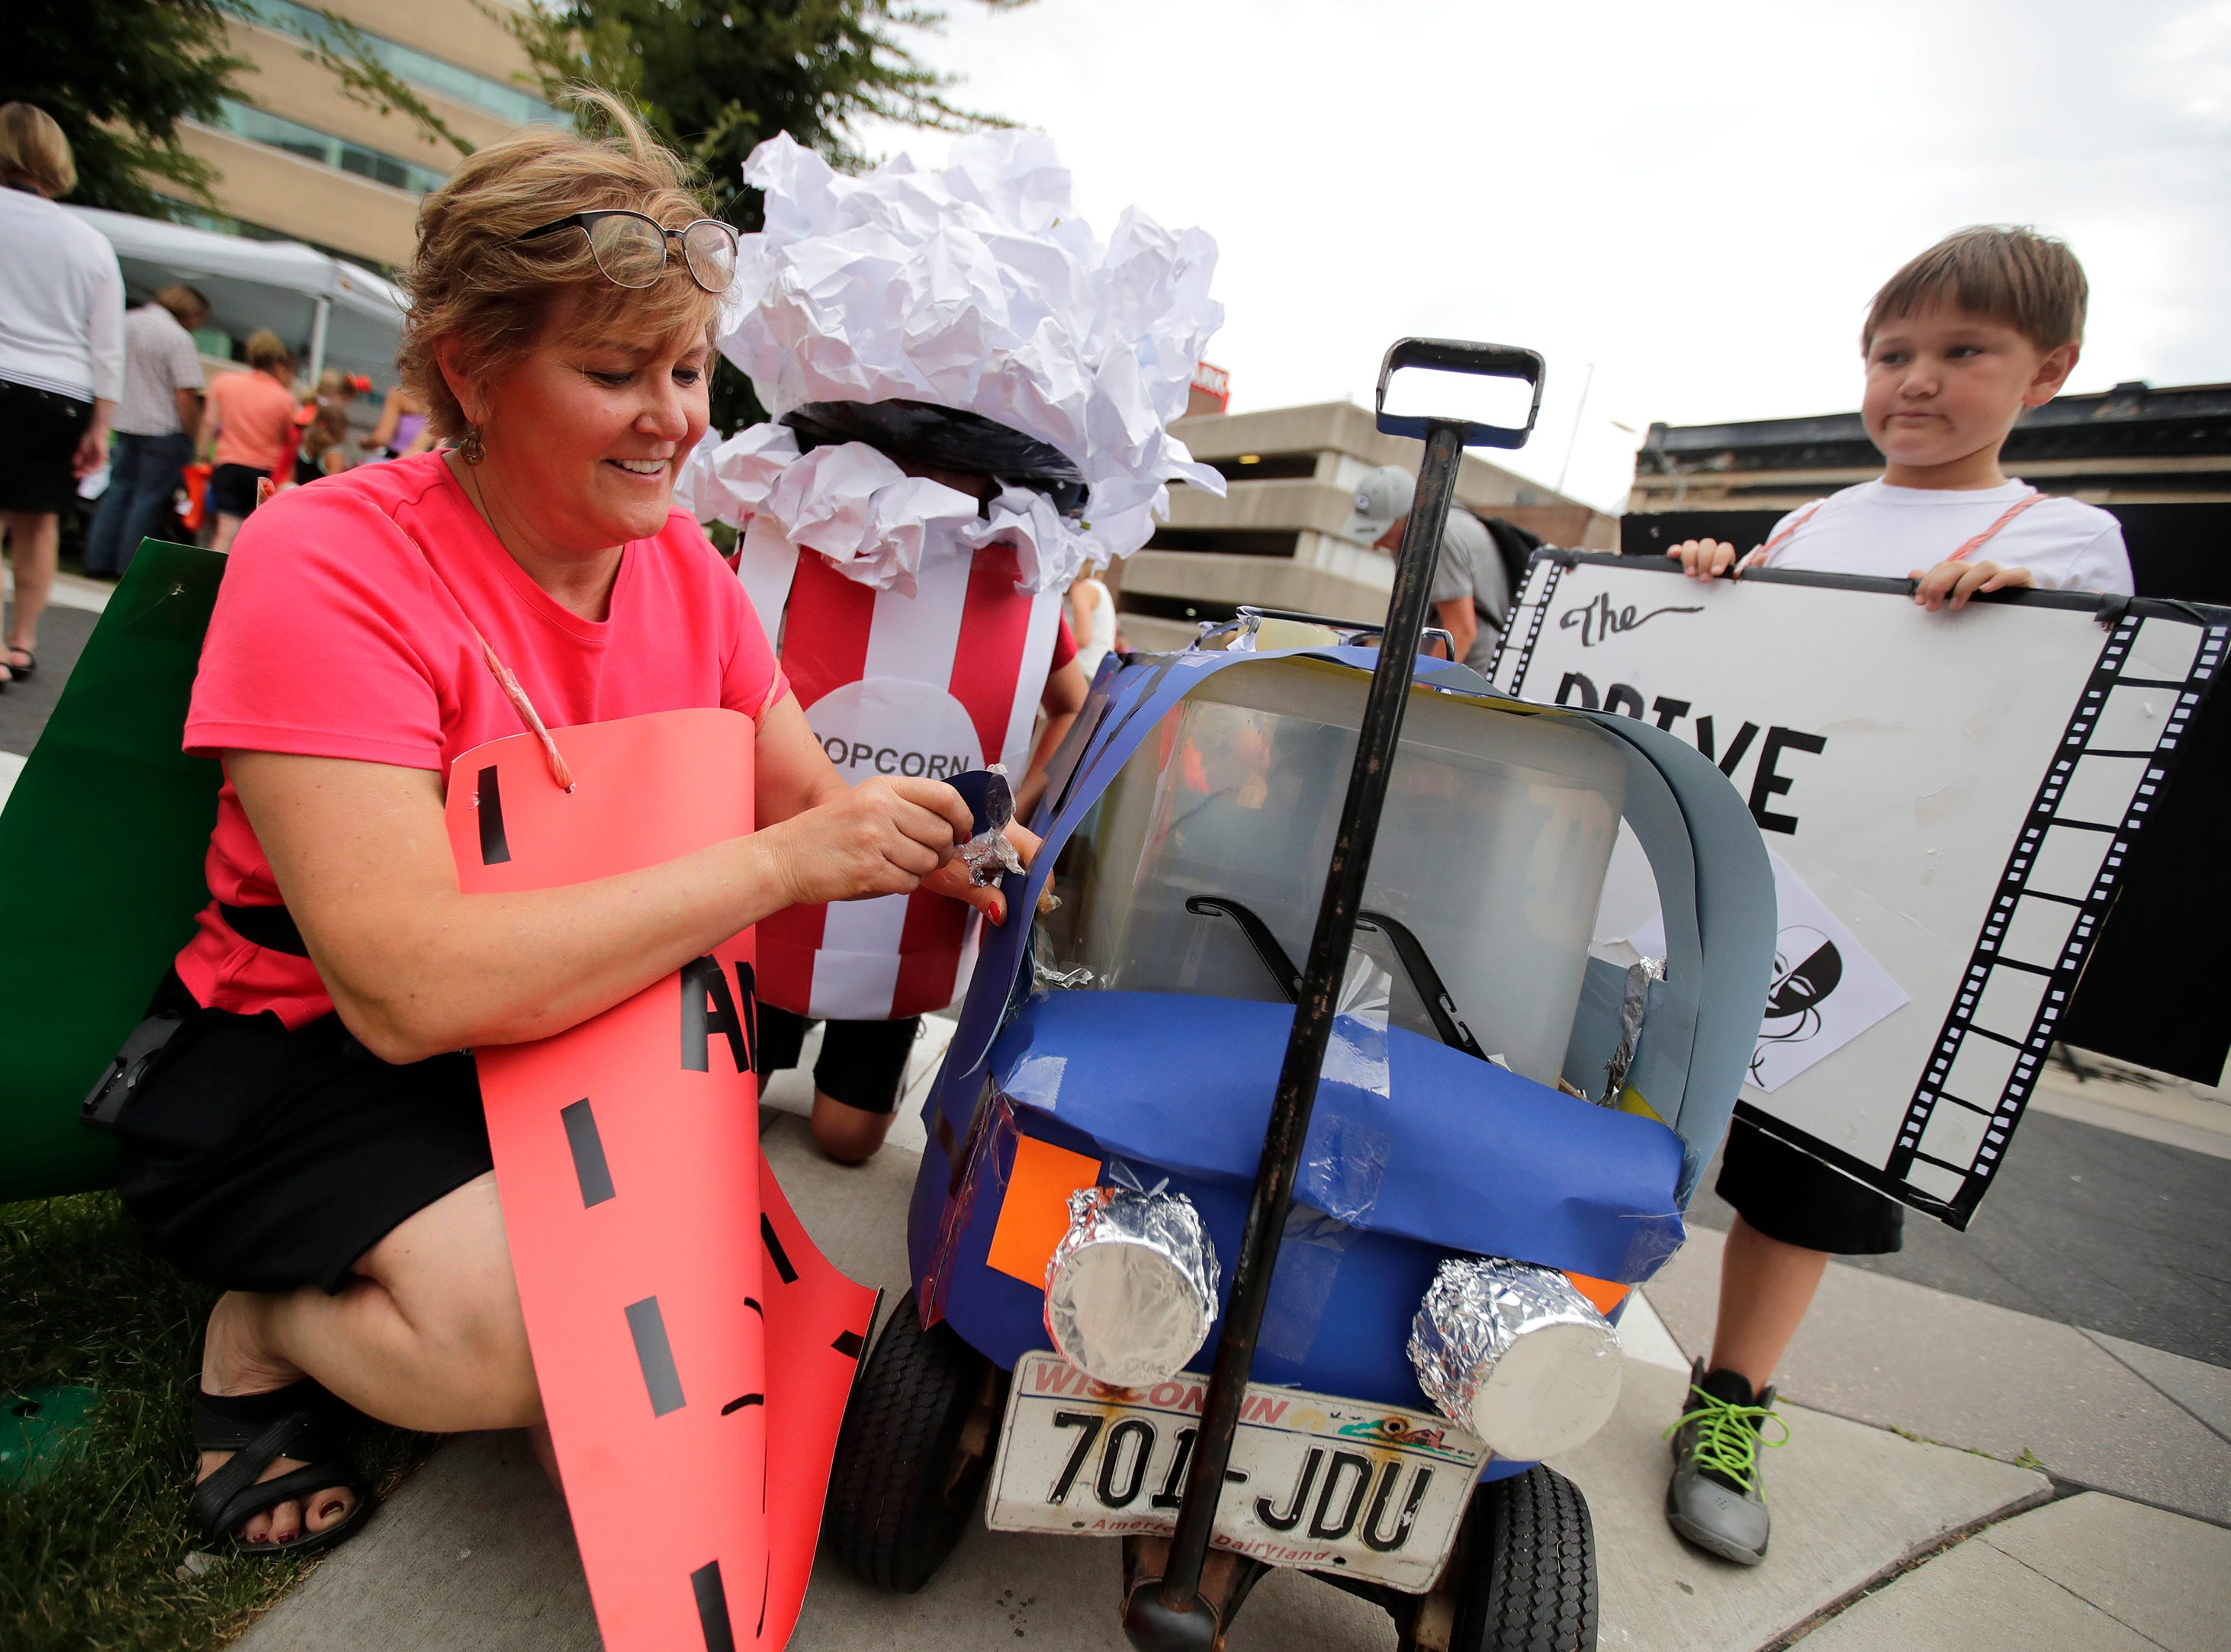 Michele VandenHeuvel, of Appleton, makes a repair to their float with her children John, 12, and Aaron, 9, during the 10th annual ChildrenÕs Parade Wednesday, July 25, 2018, in Appleton, Wis. Danny Damiani/USA TODAY NETWORK-Wisconsin